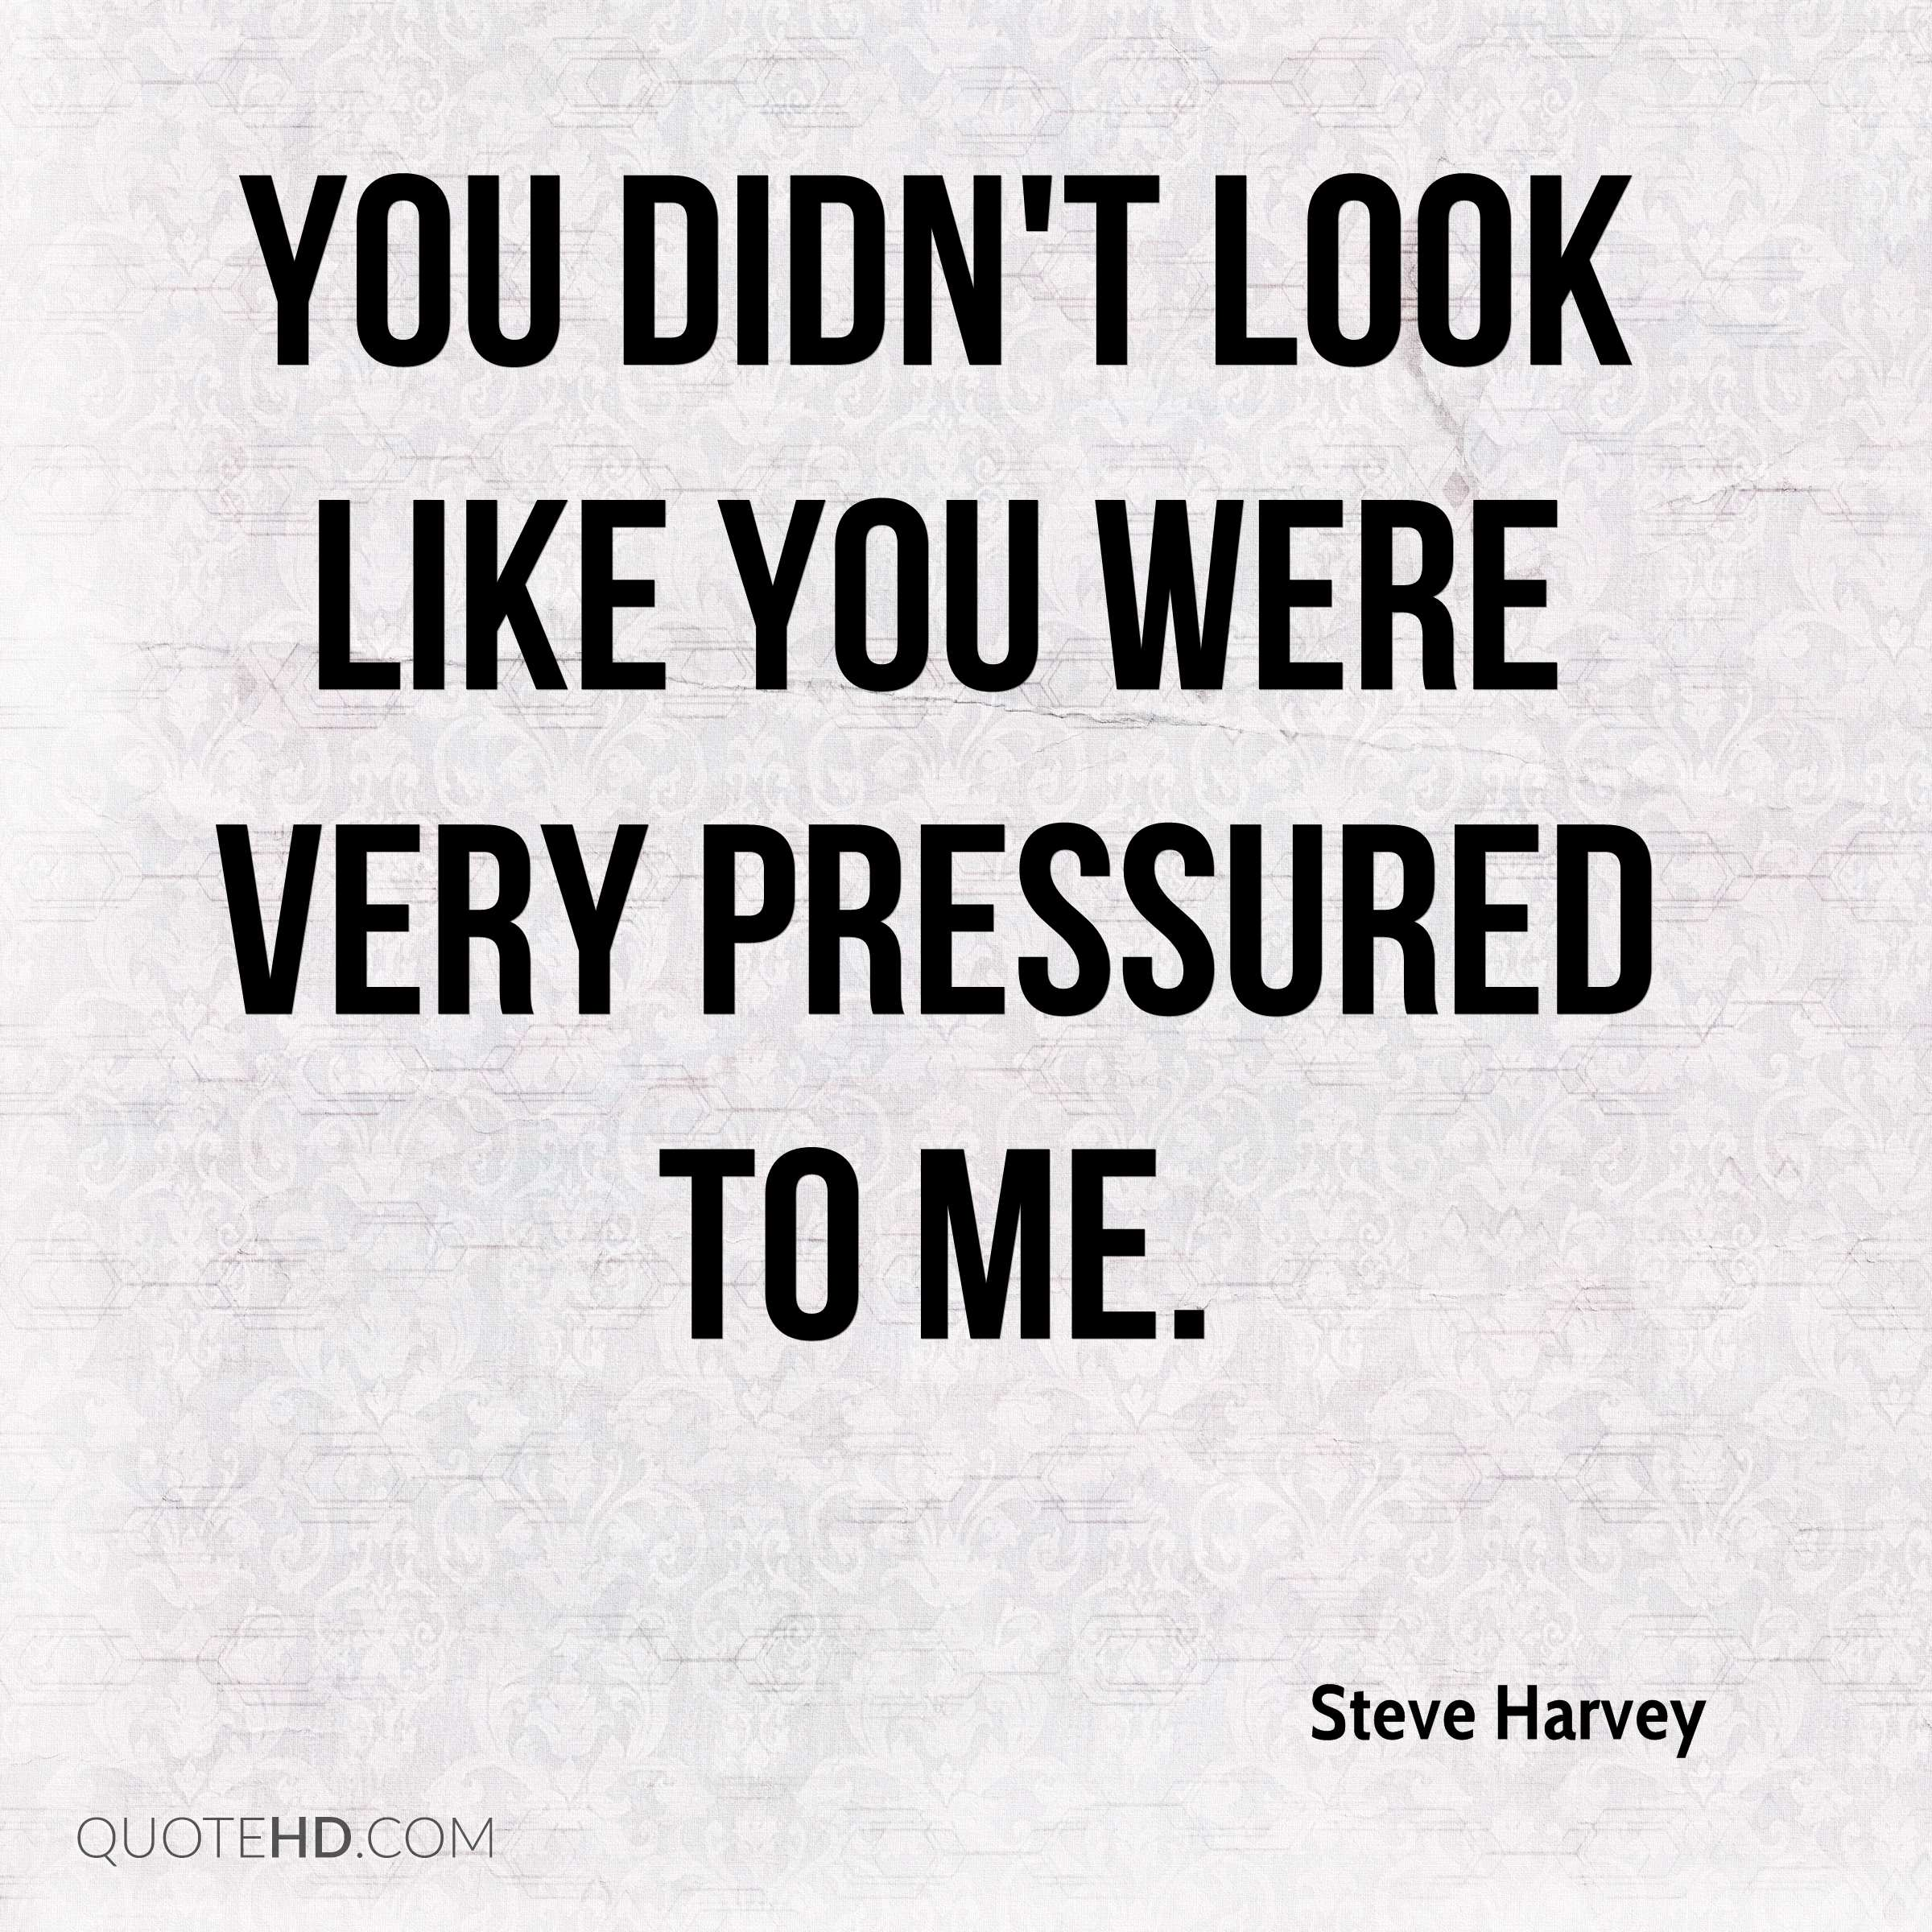 You didn't look like you were very pressured to me.